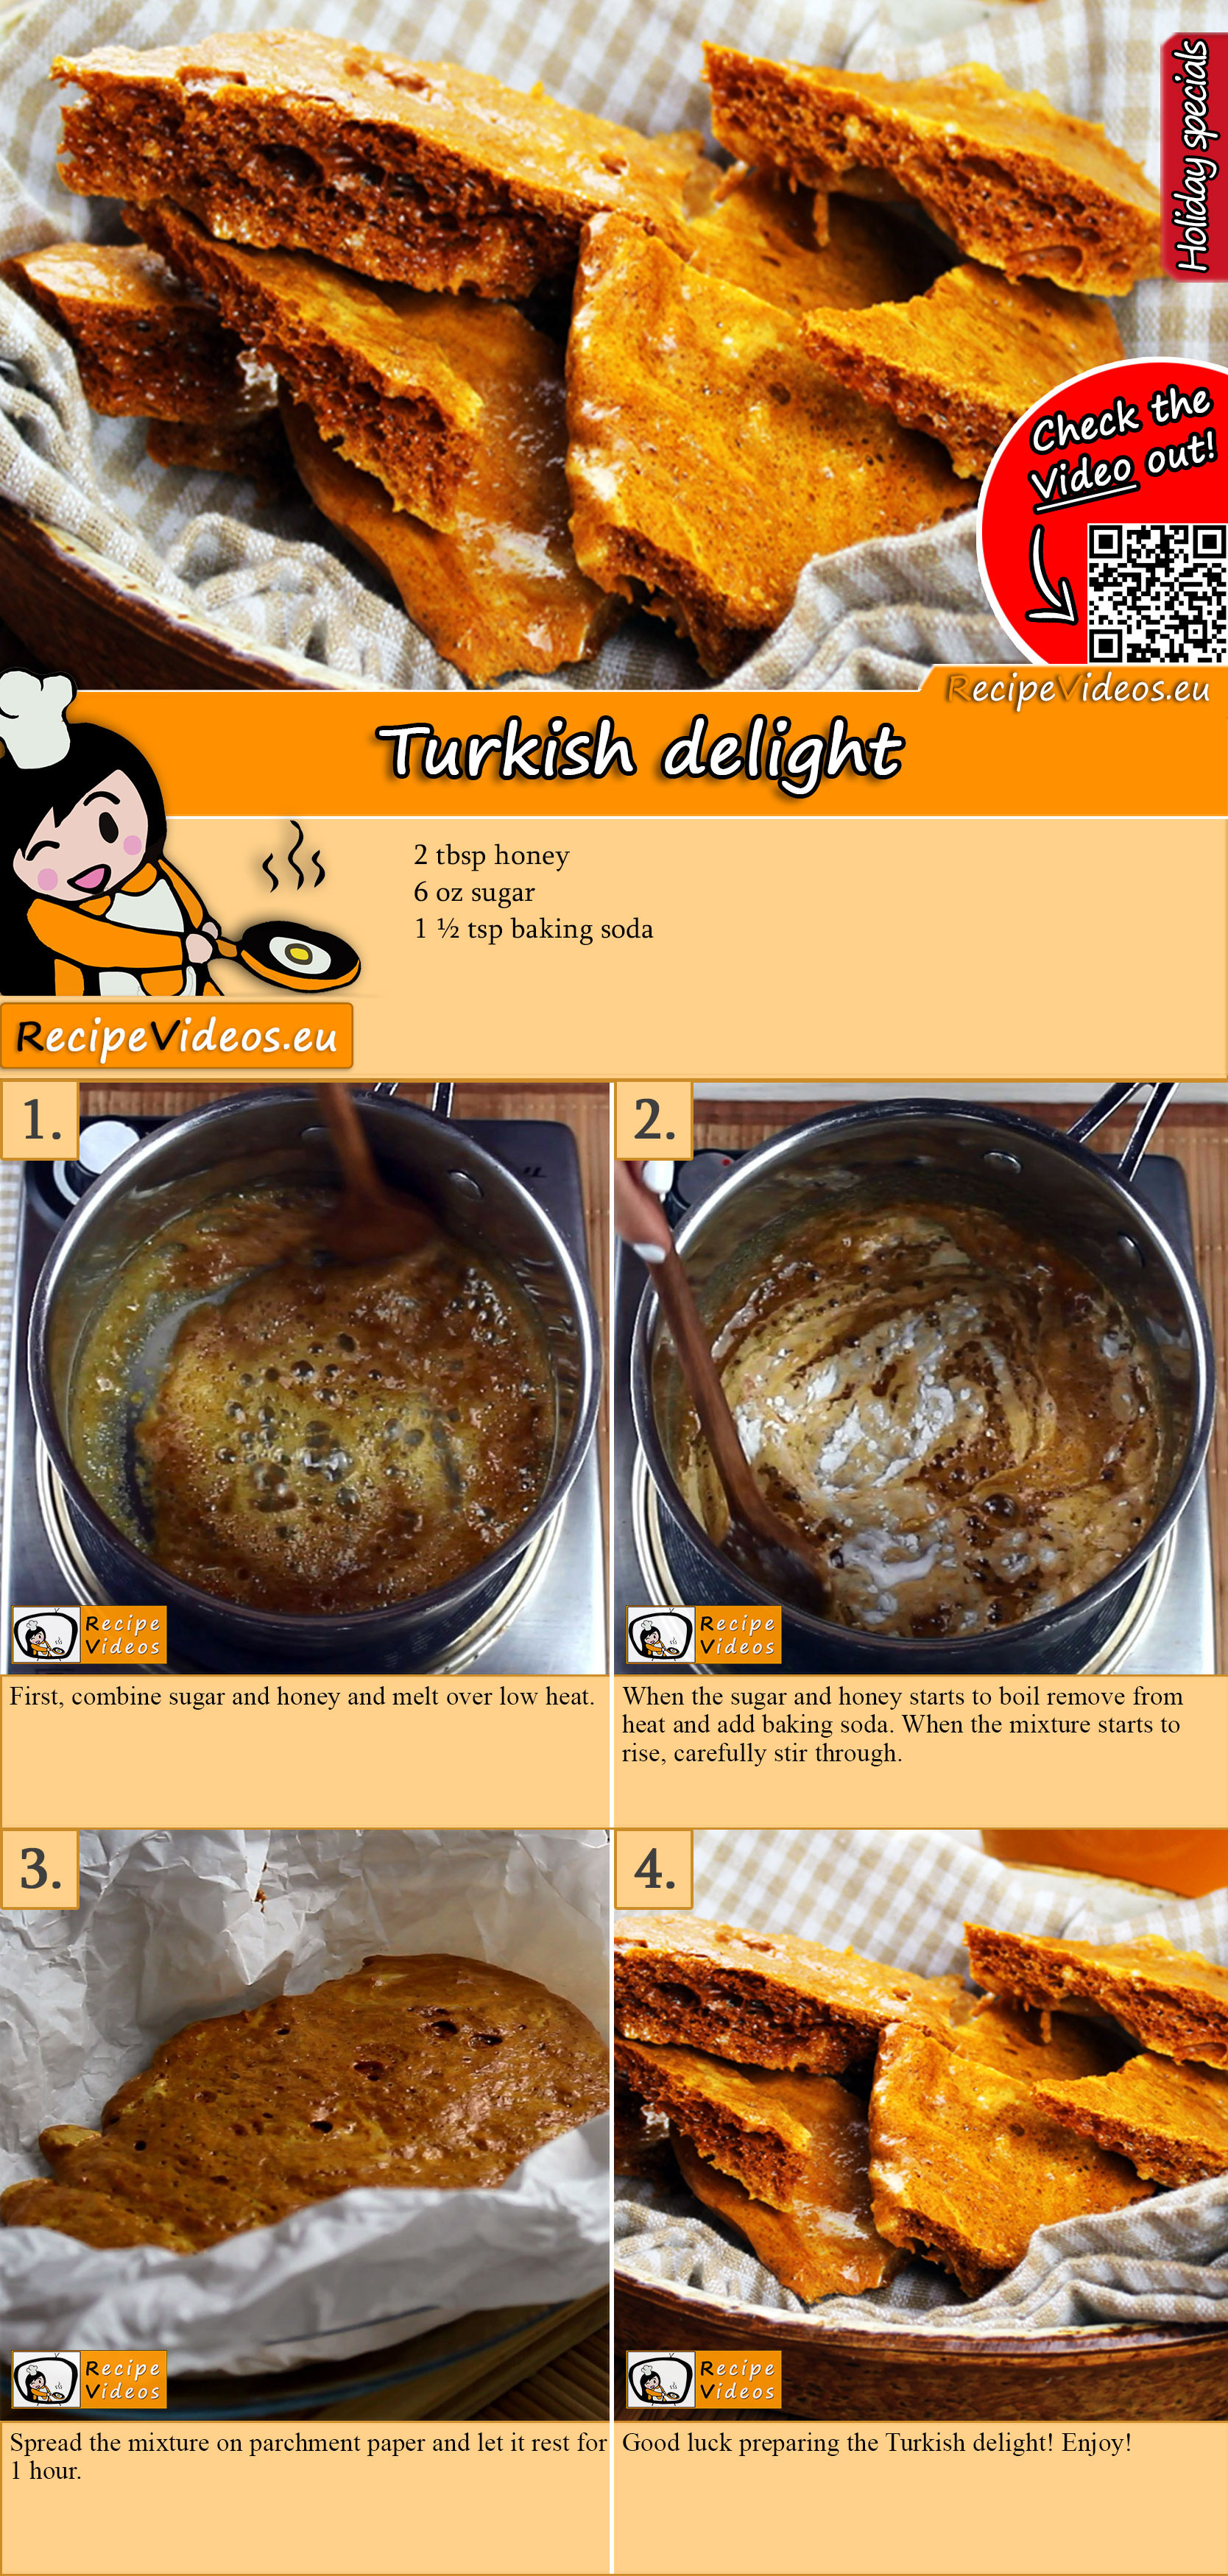 Turkish delight recipe with video